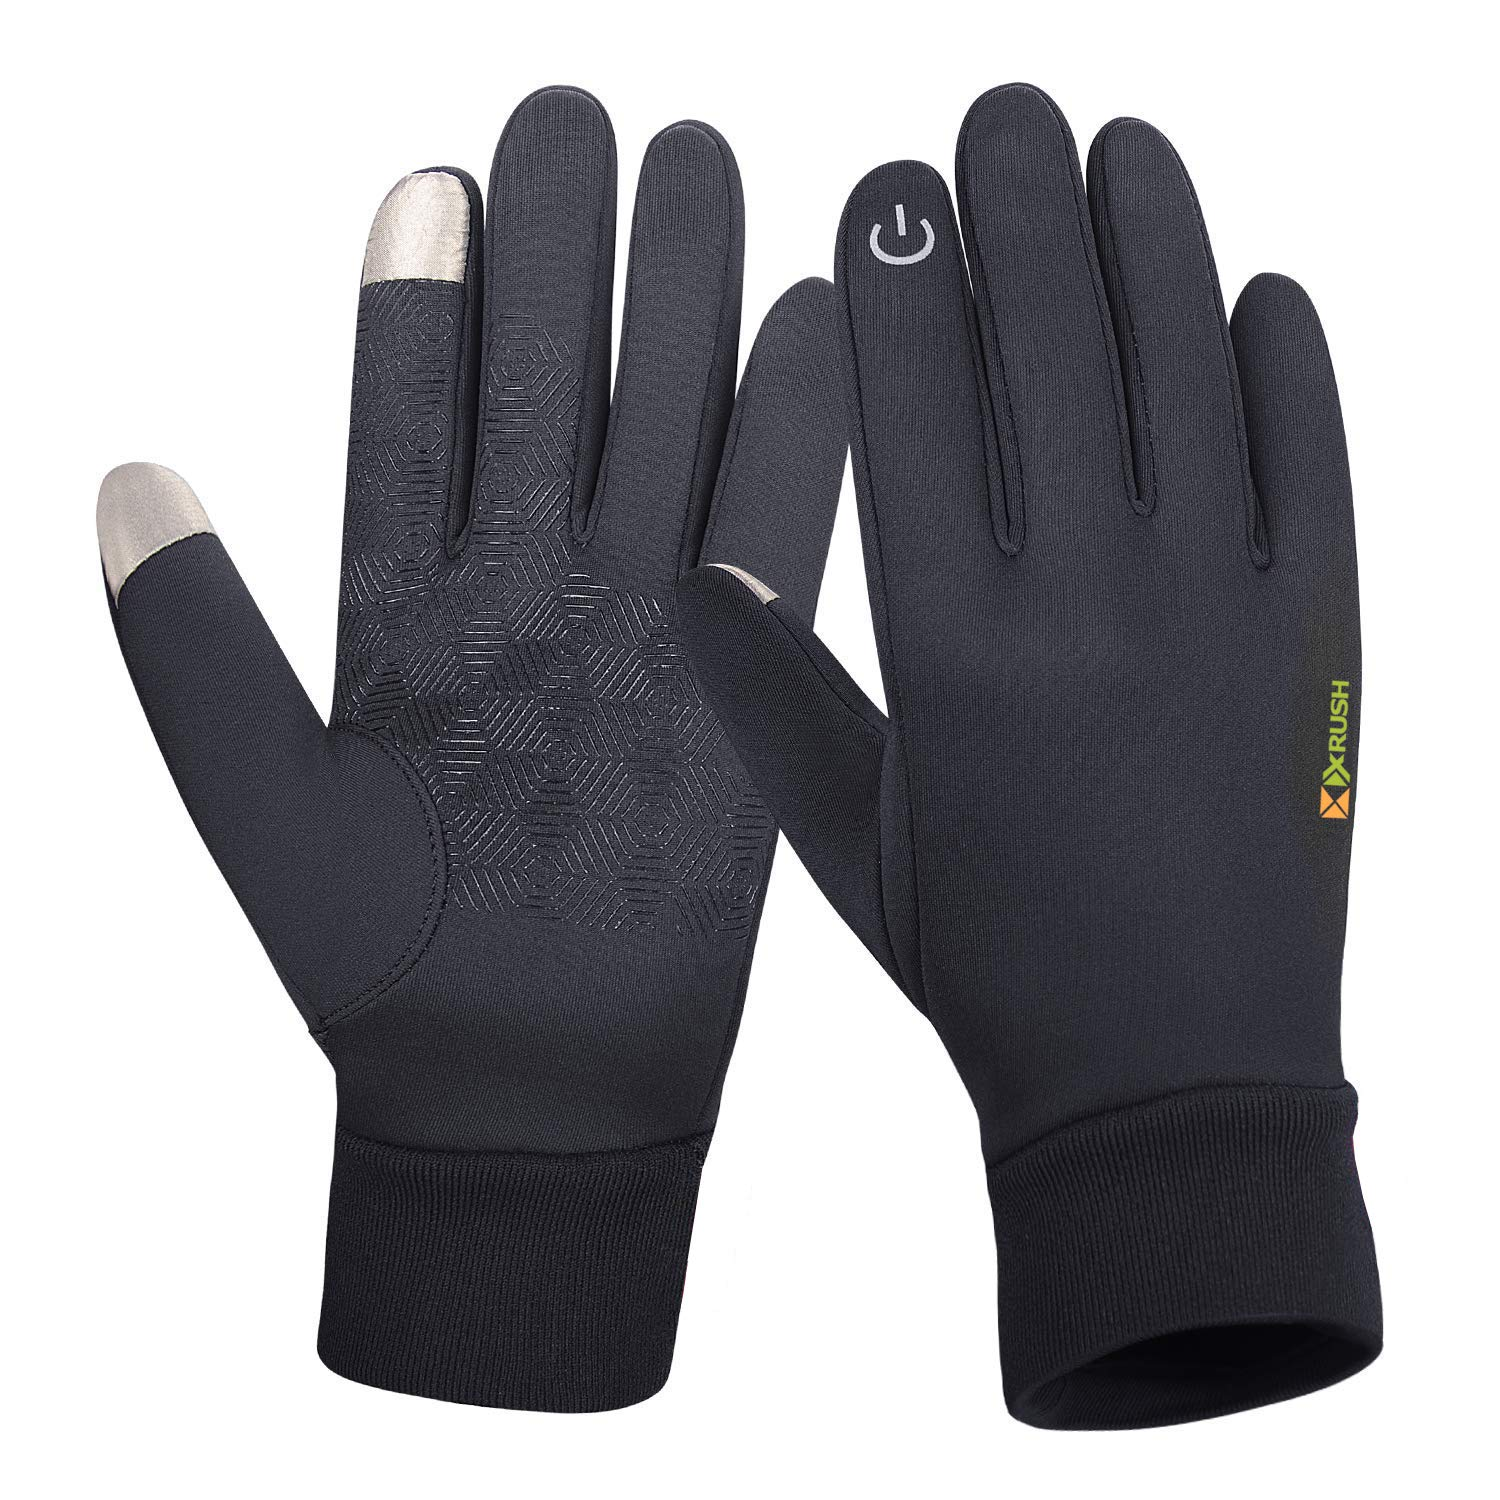 Winter Gloves Touch Screen Gloves Windproof Warm Gloves Cold Weather Running Gloves Driving Gloves for Women Men Cellphone Texting Non-Slip Lightweight for Cycling,Running (Black, Large)